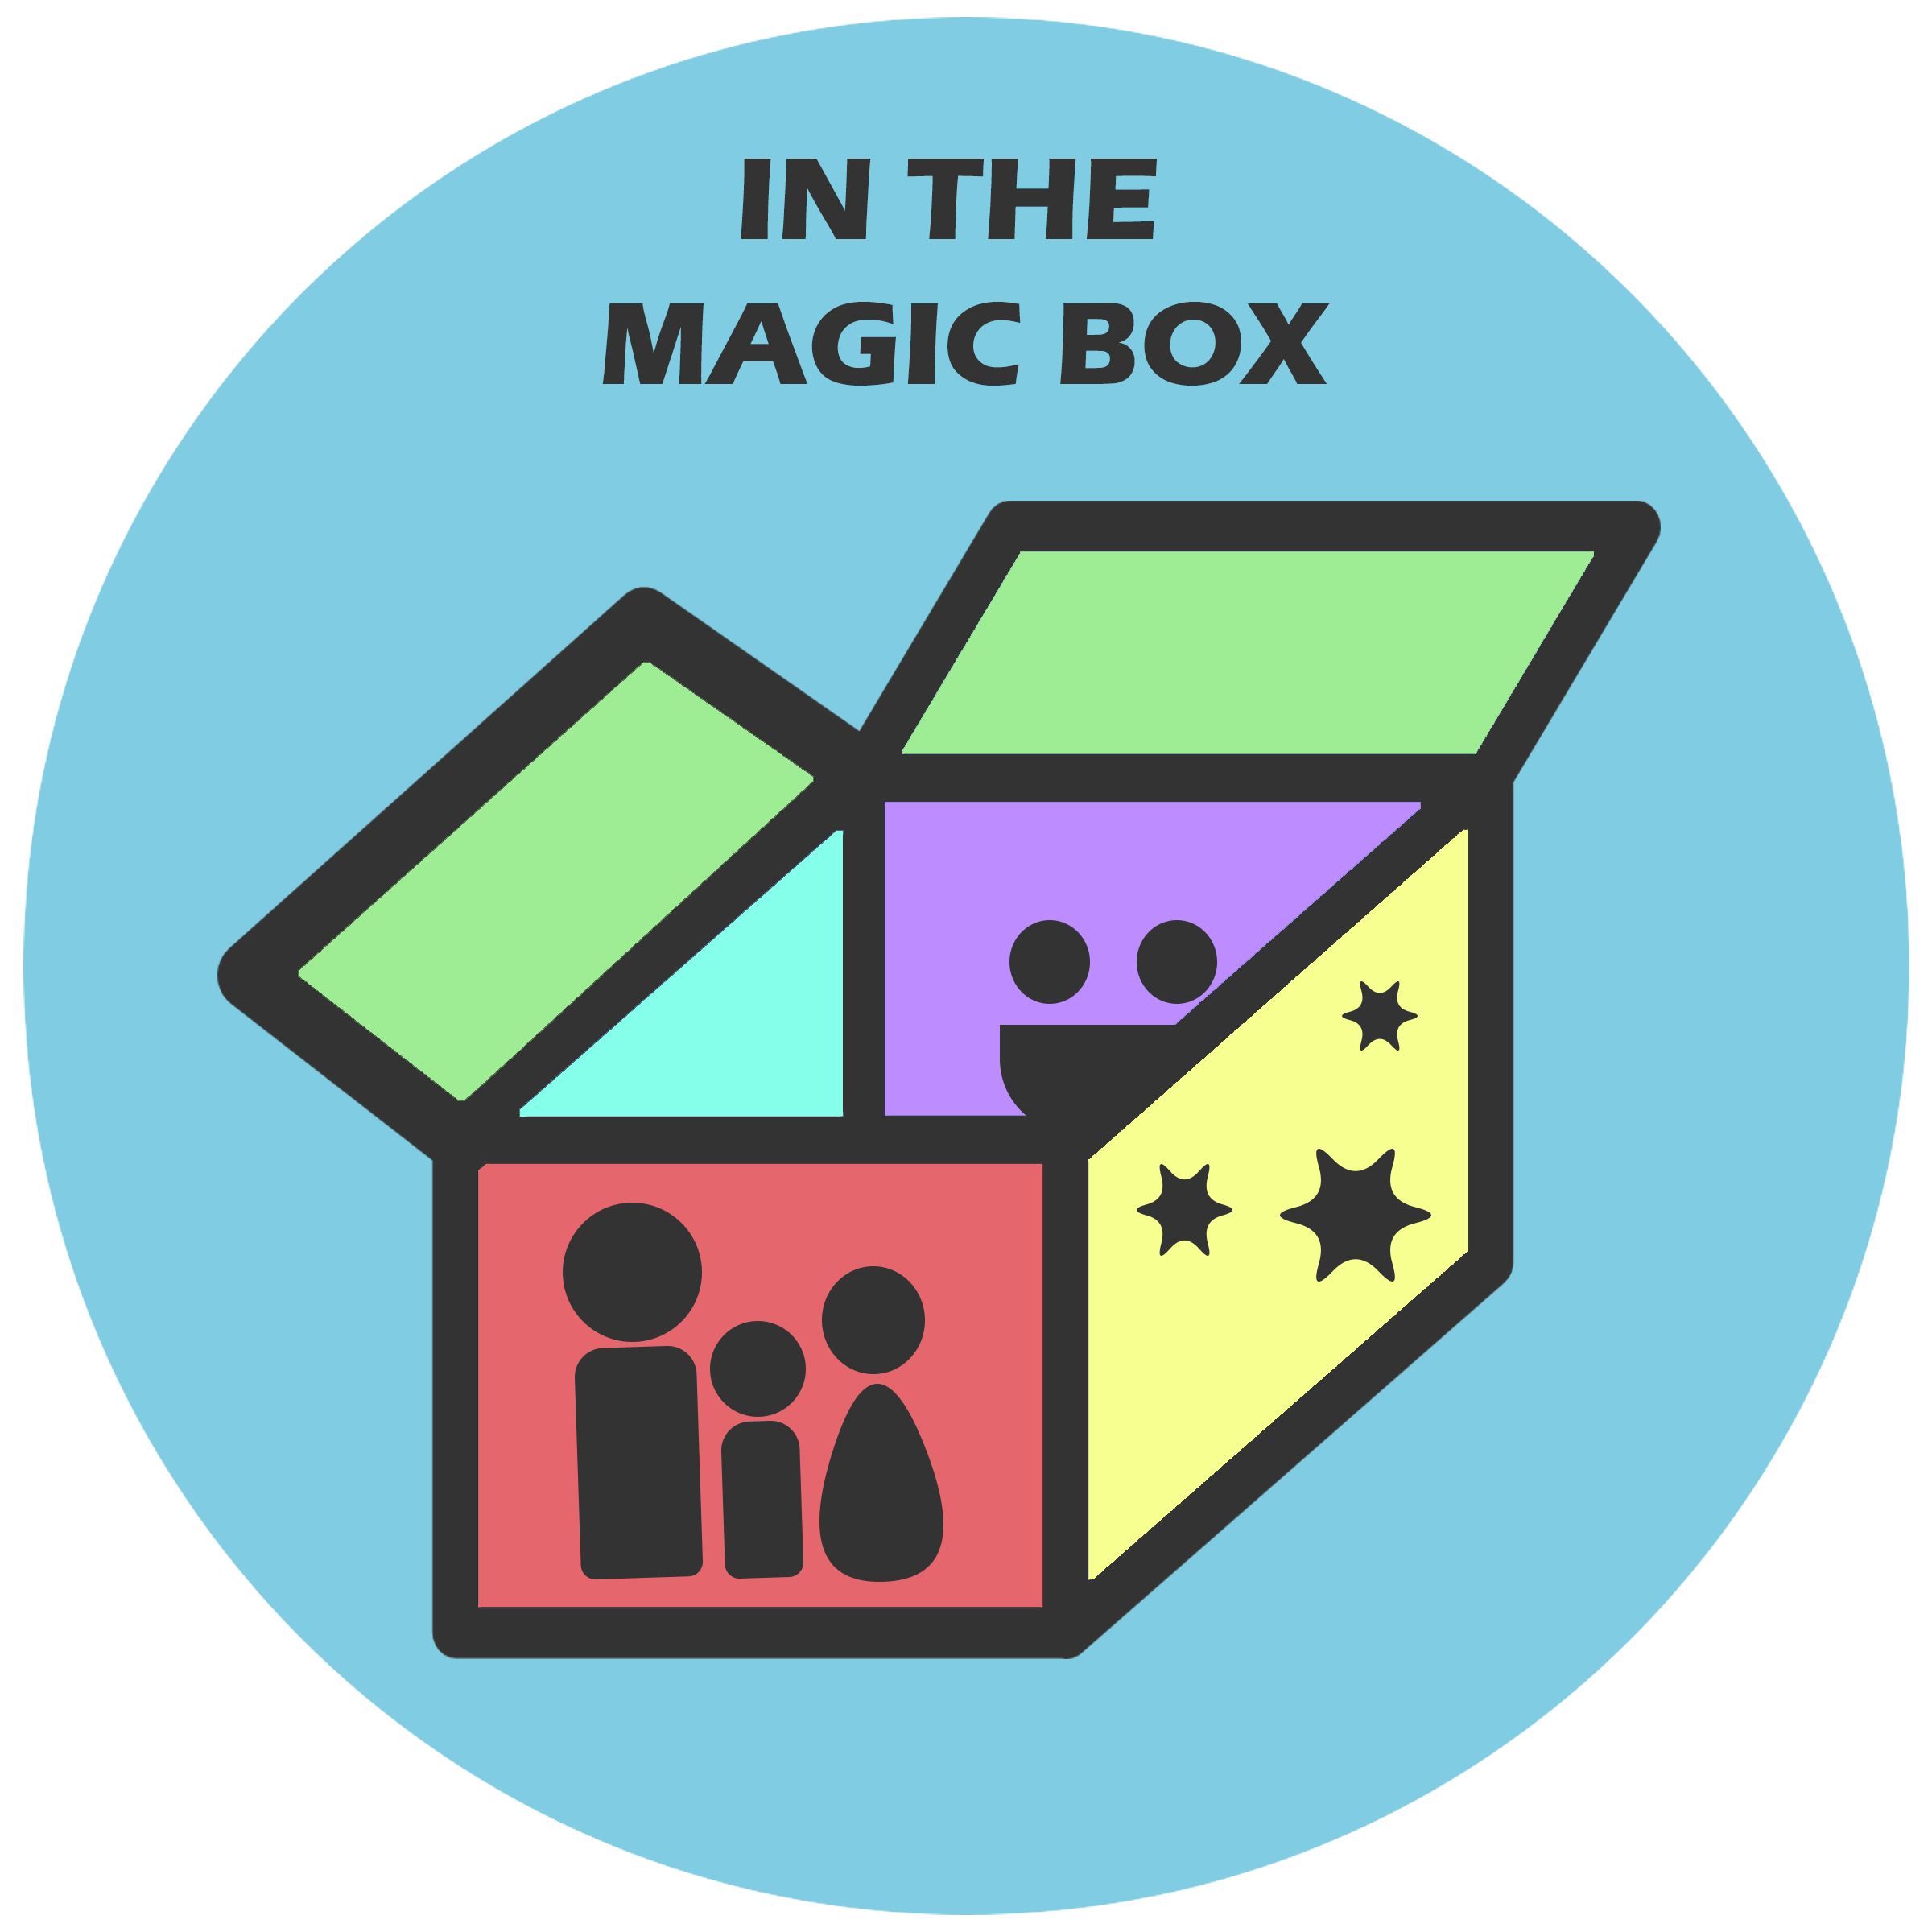 Magic box png. Home in the